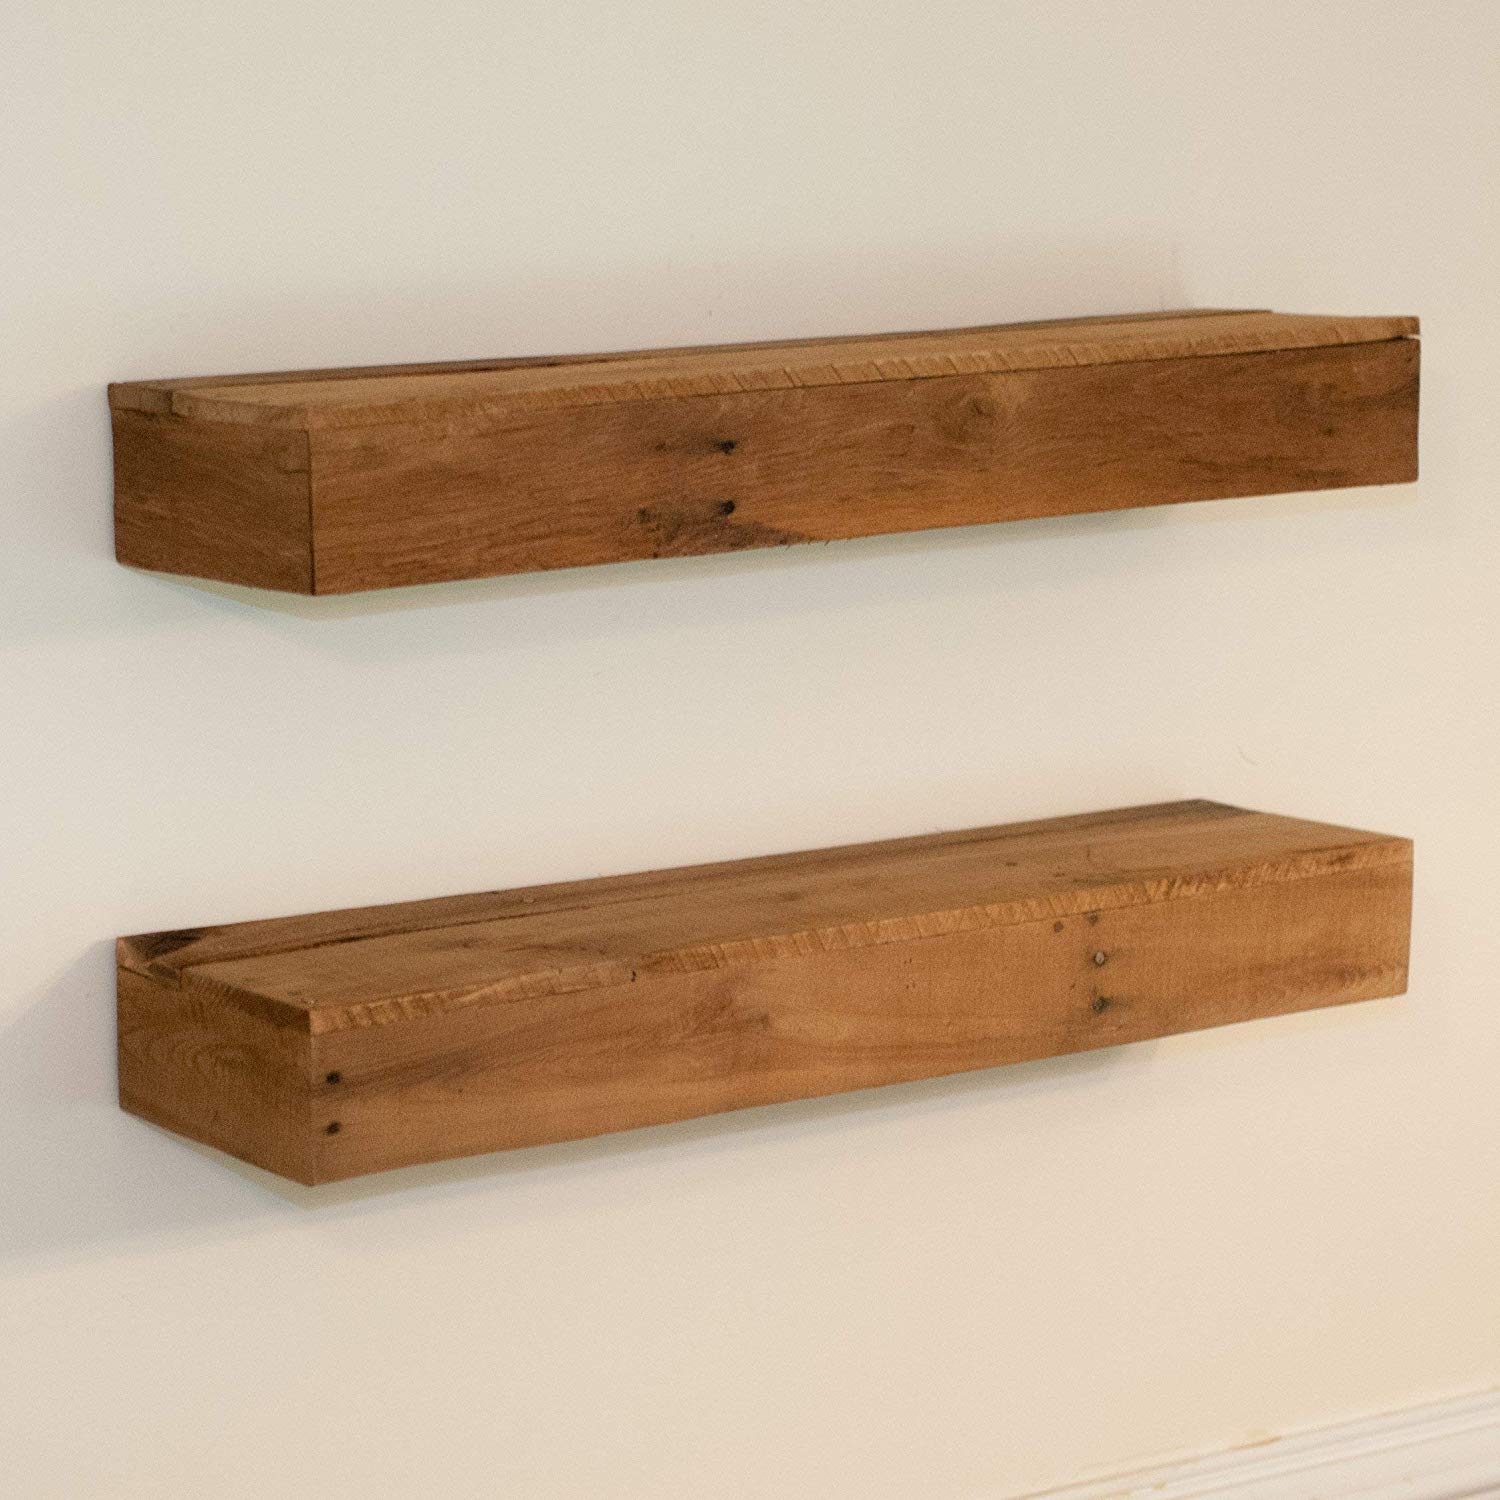 wood floating shelf rustic kitchen reclaimed shelves farmhouse hung with keyhole hooks included sink window best queen mattress under foyer coat hanger commercial foot interior